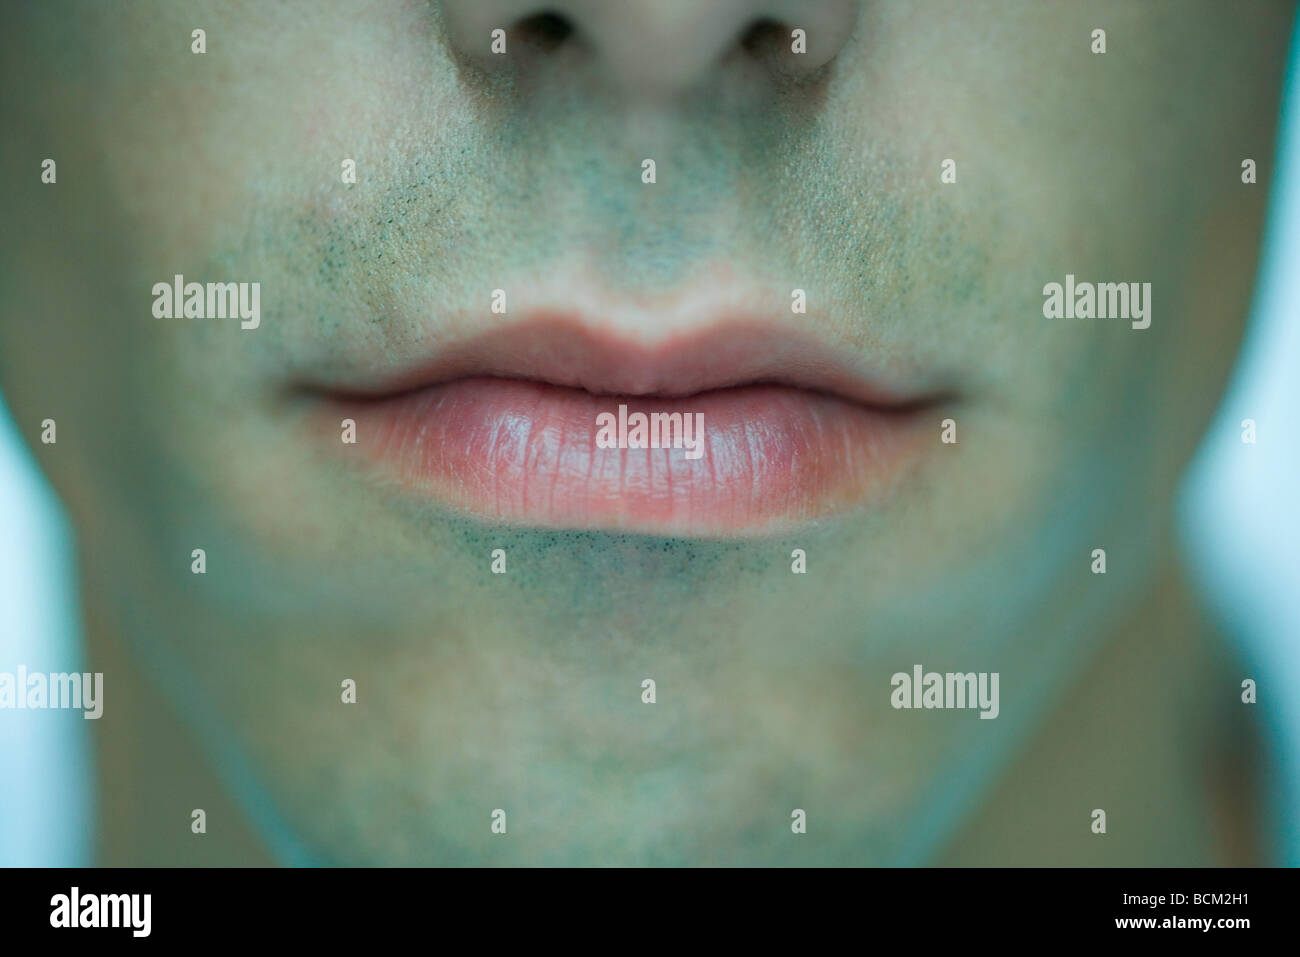 Man's lips, close-up - Stock Image